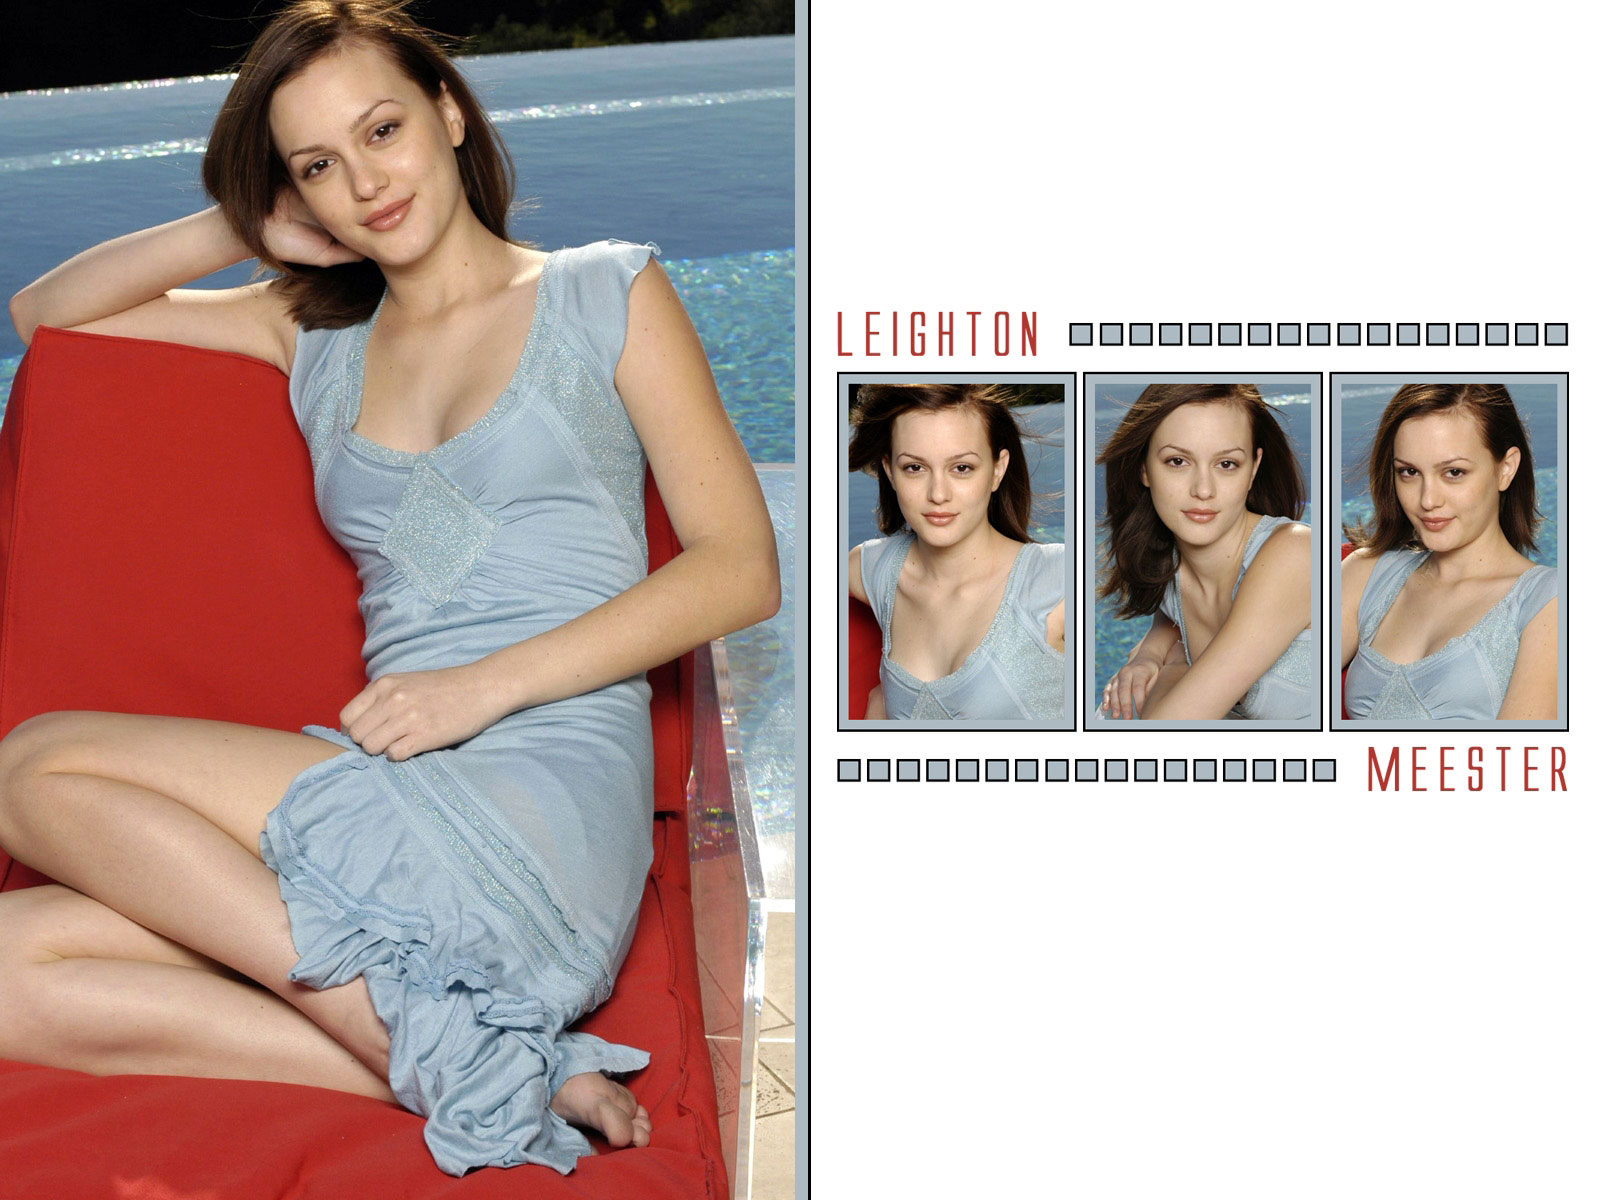 Leighton Meester 7 wallpaper